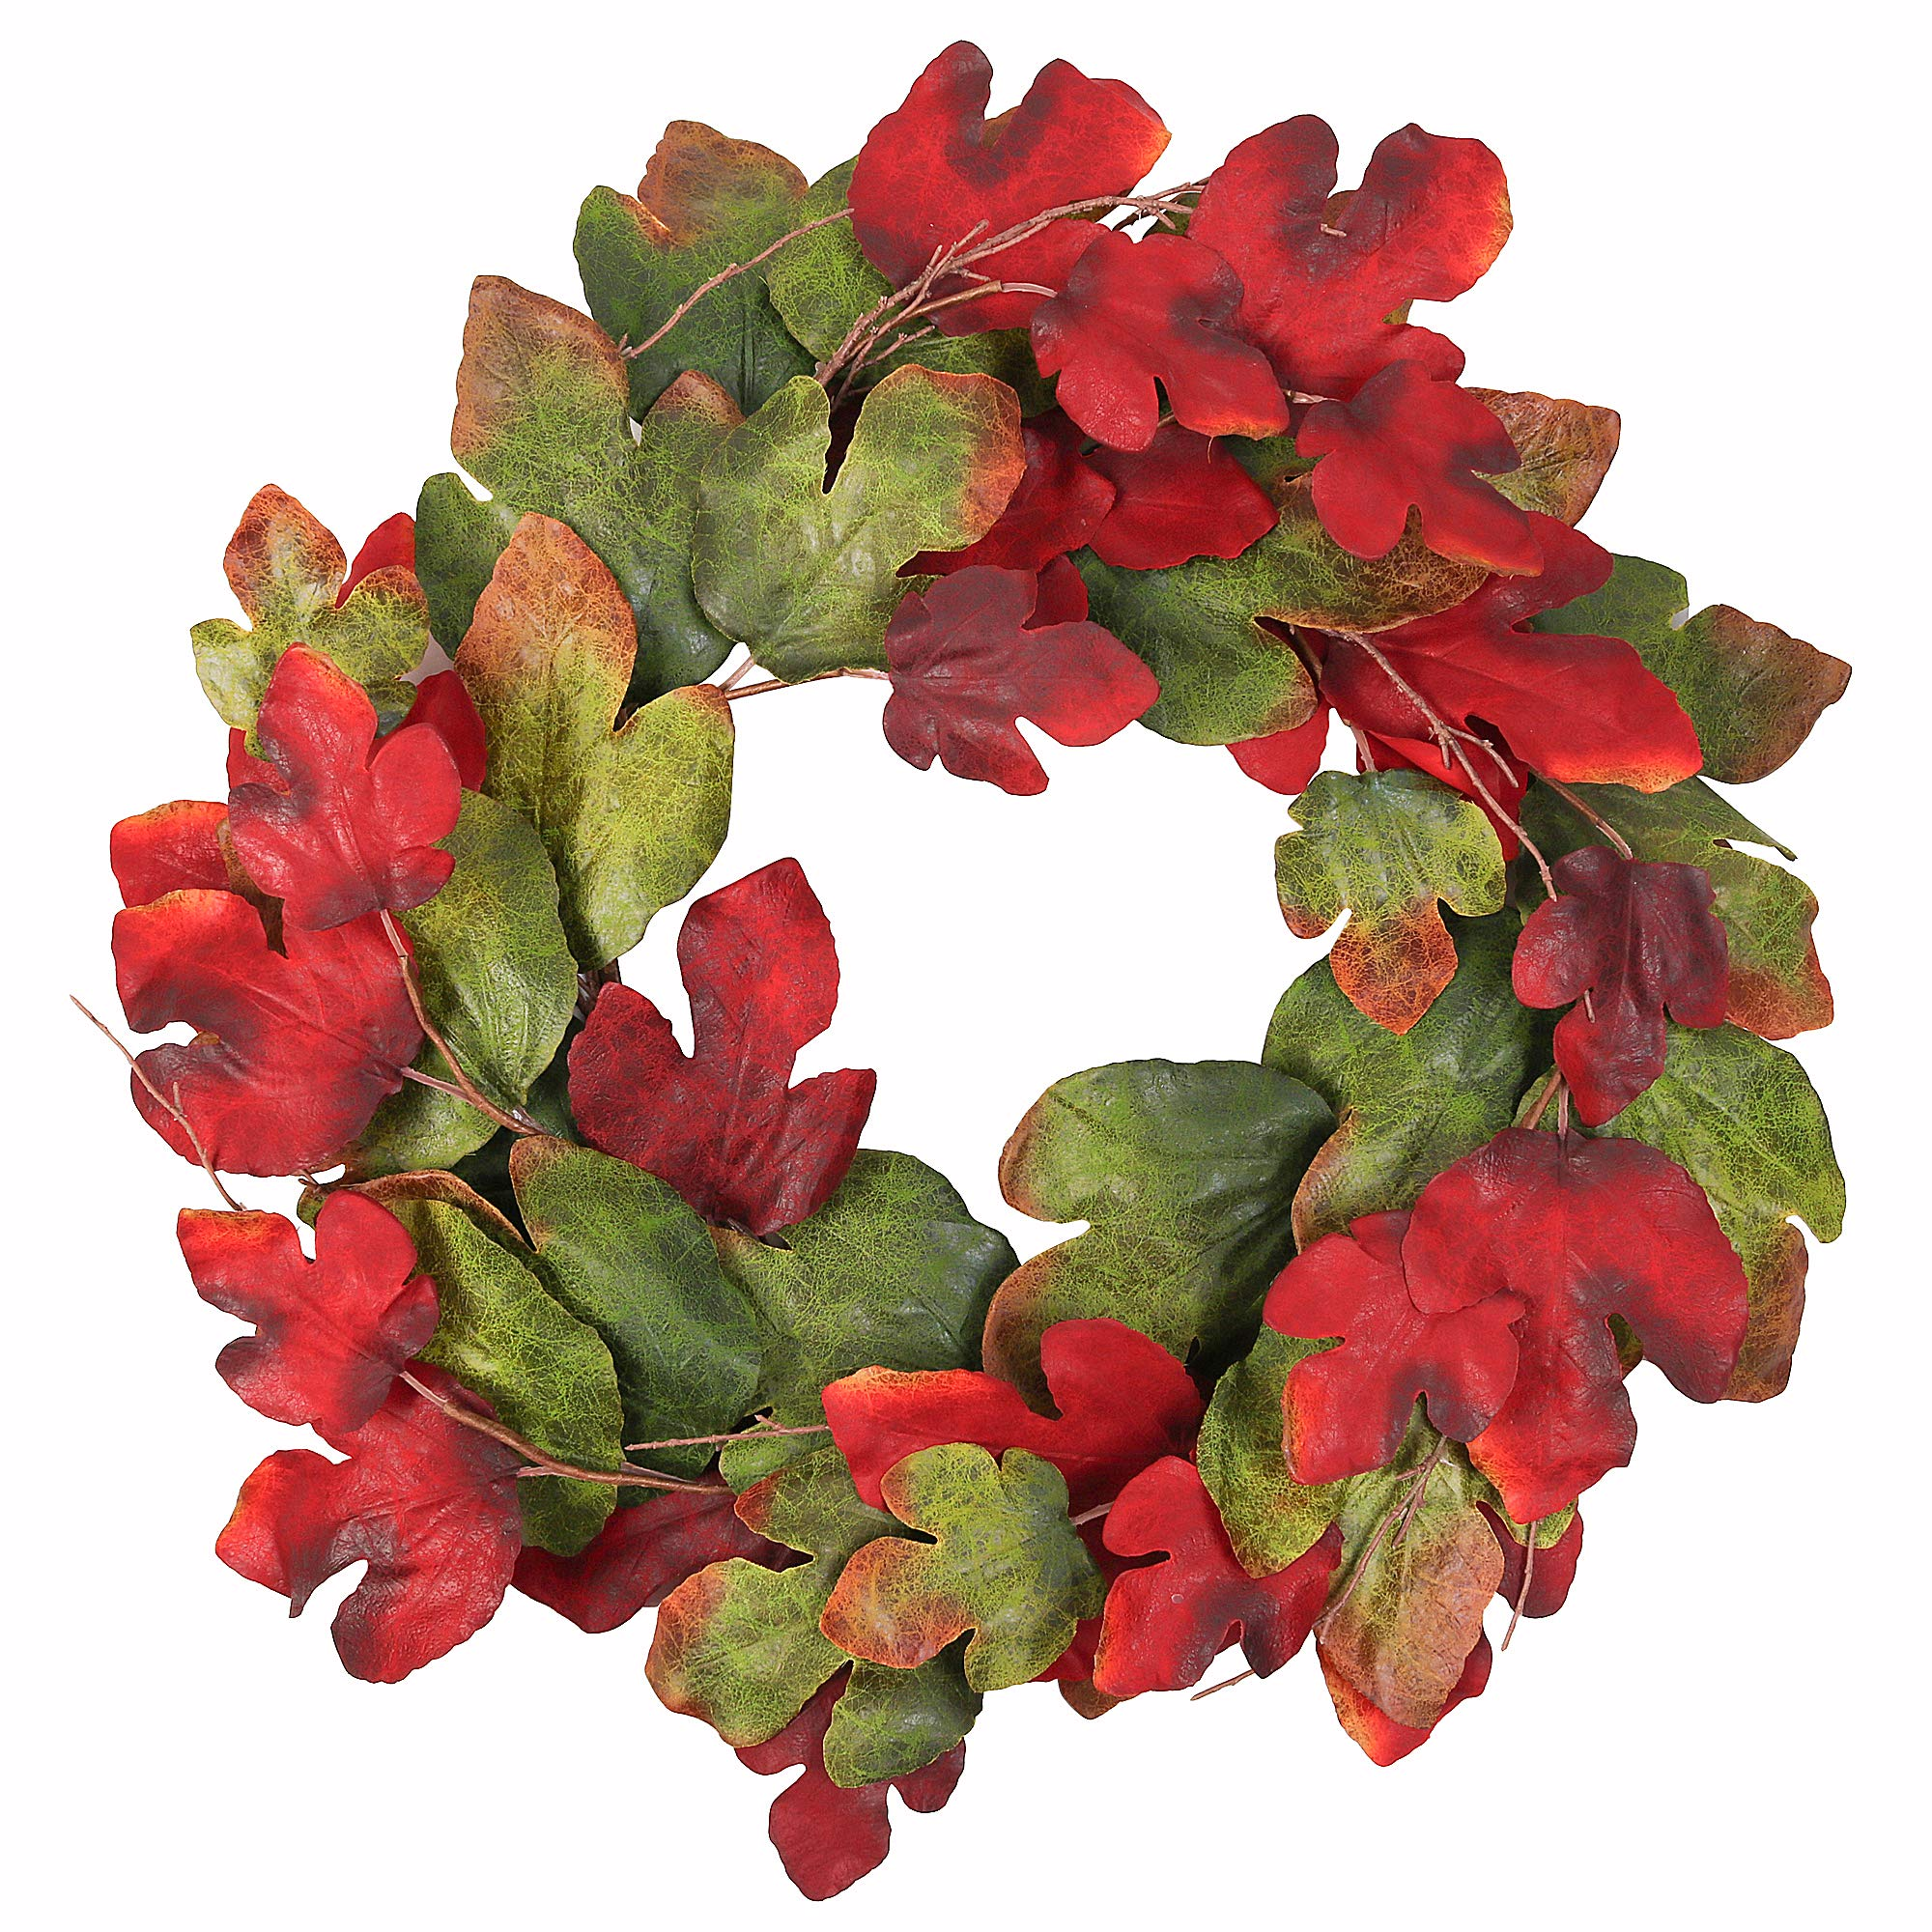 Wreath Maple Leaves Garland Artificial Round Front Door Wall Window Decoration Rich Colors Home Deco 33 Inches Dark Green by Cloris Art